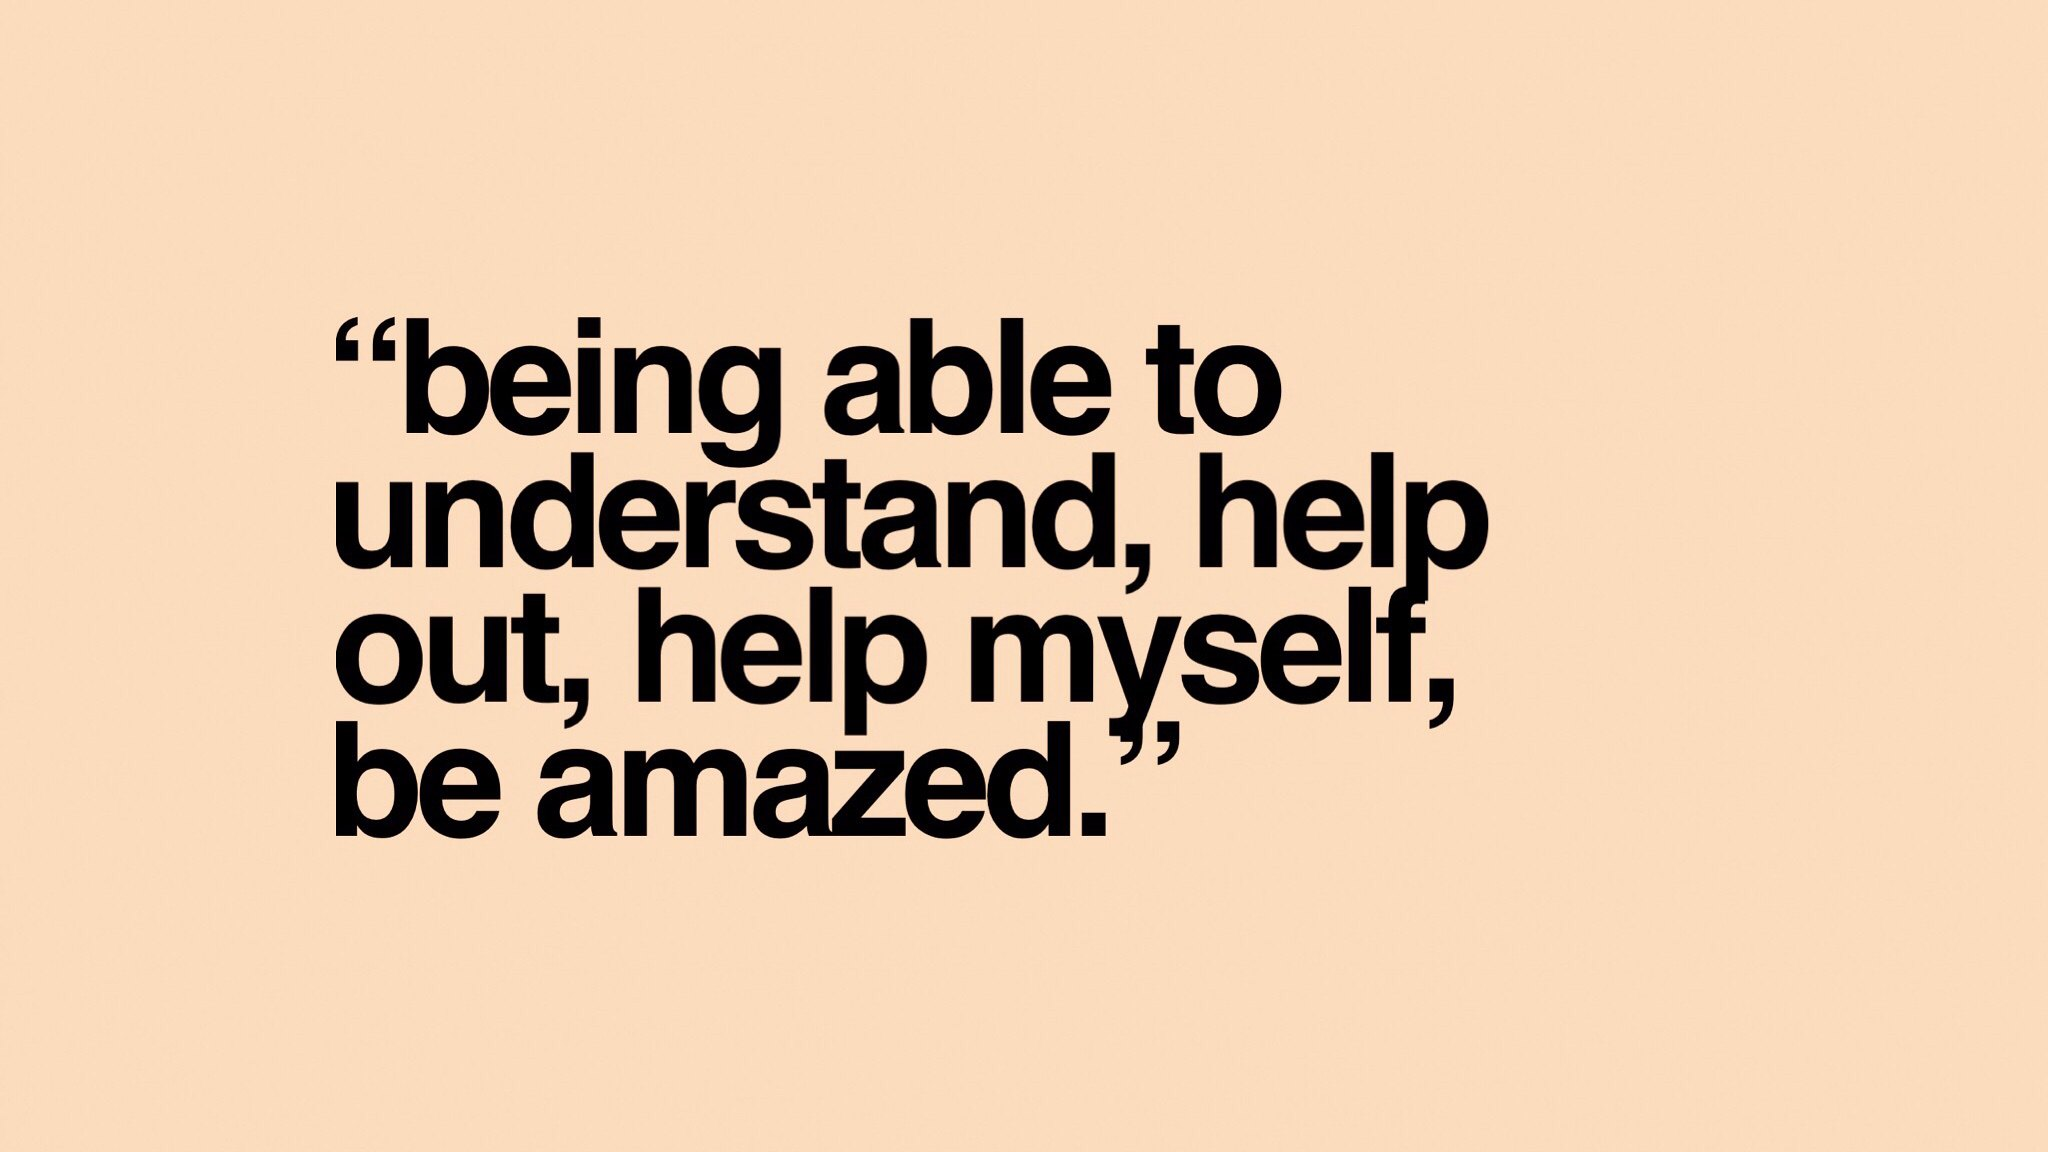 Being able to understand, help out, help myself, be amazed.